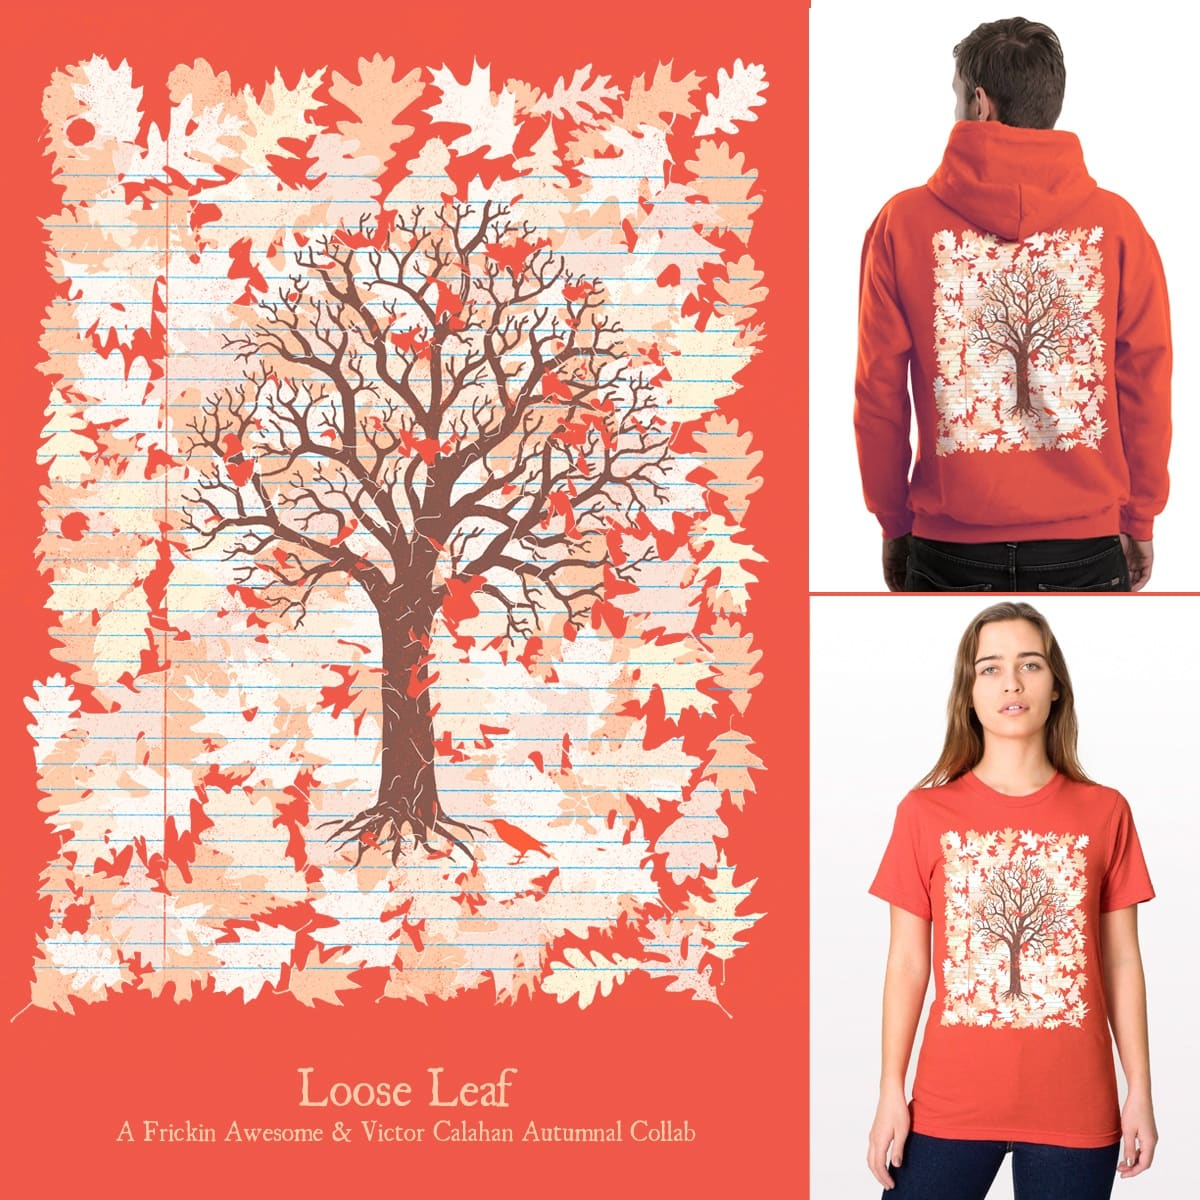 Loose Leaf by FRICKINAWESOME and v_calahan on Threadless